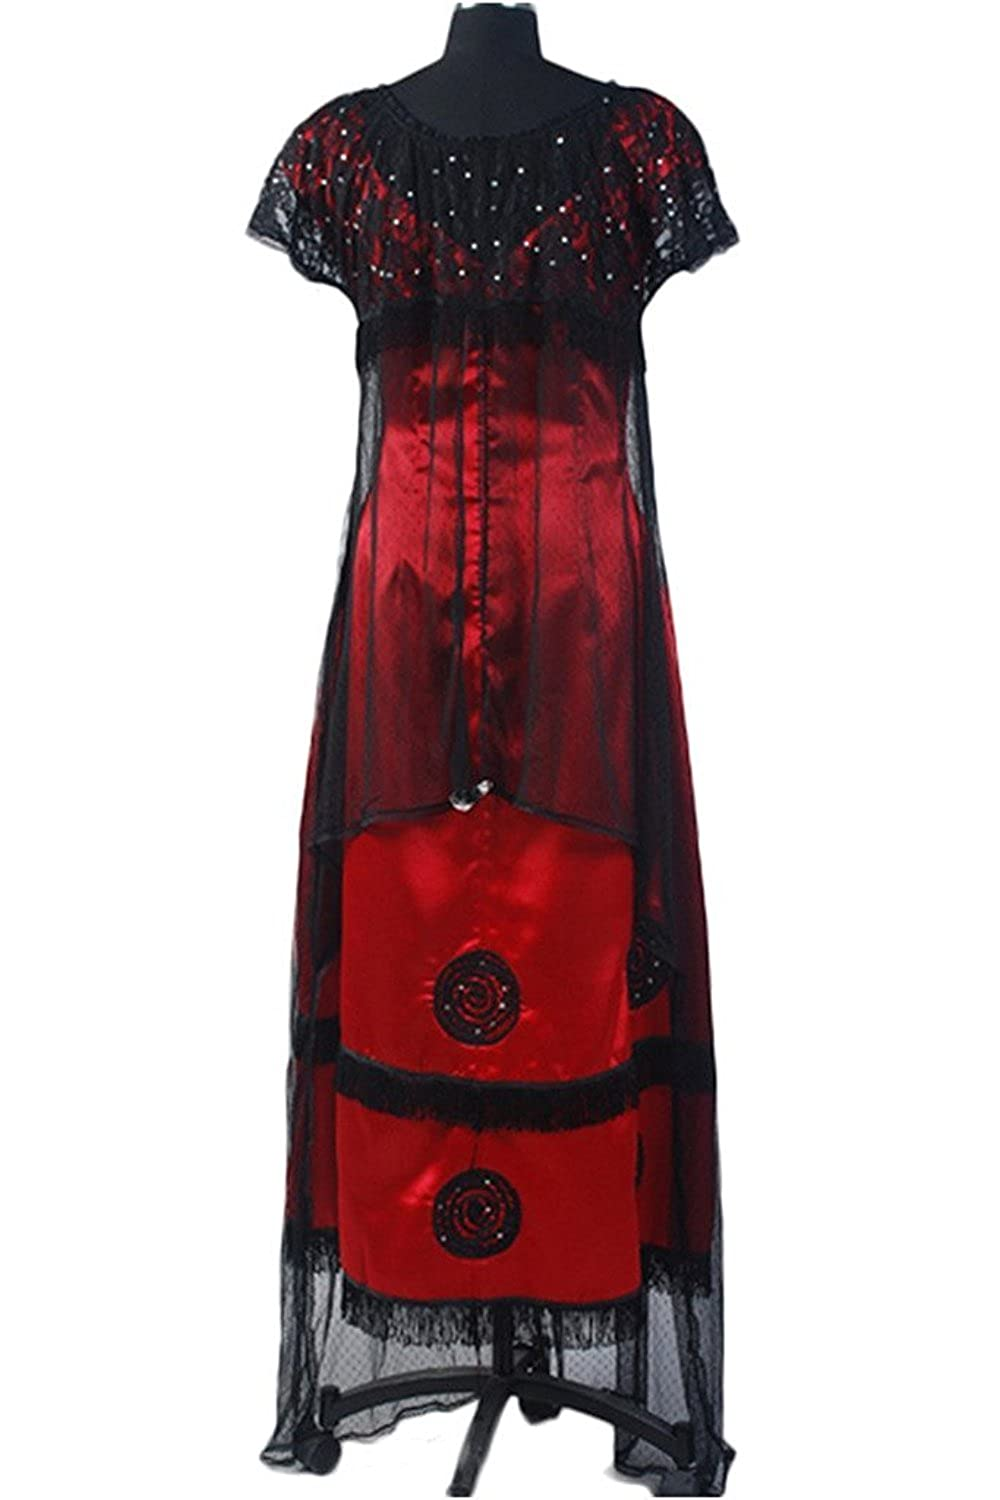 Amazon.com: Sidnor Titanic Rose Evening Ball Gown Party Dress ...